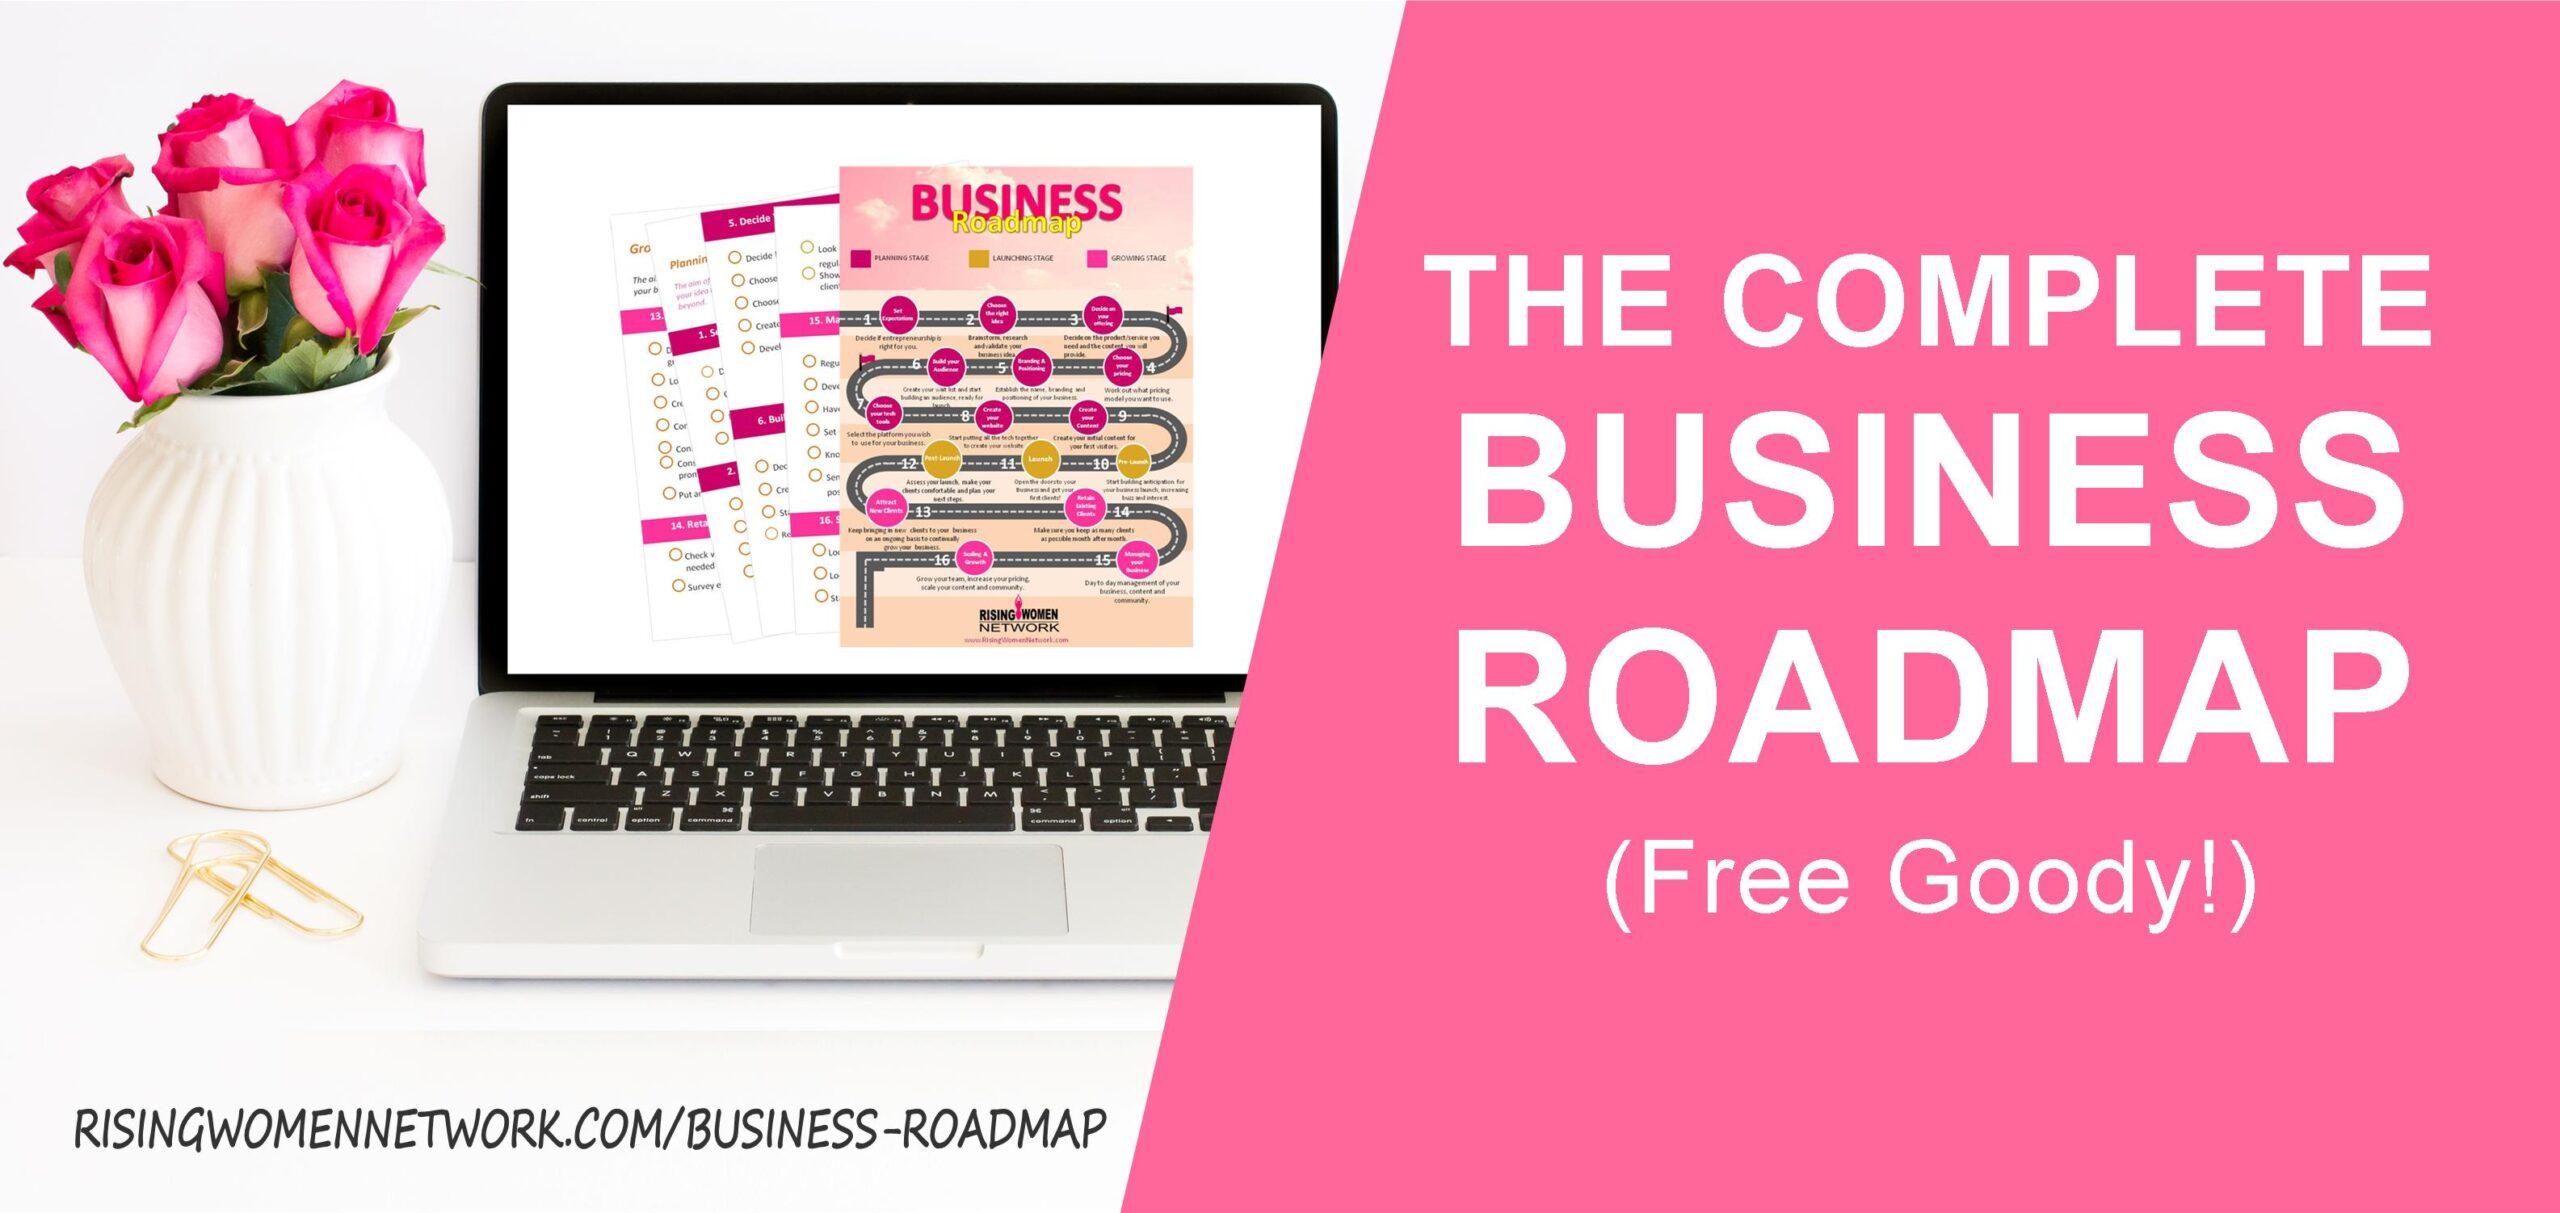 The Complete Business Roadmap (Free Goody!)